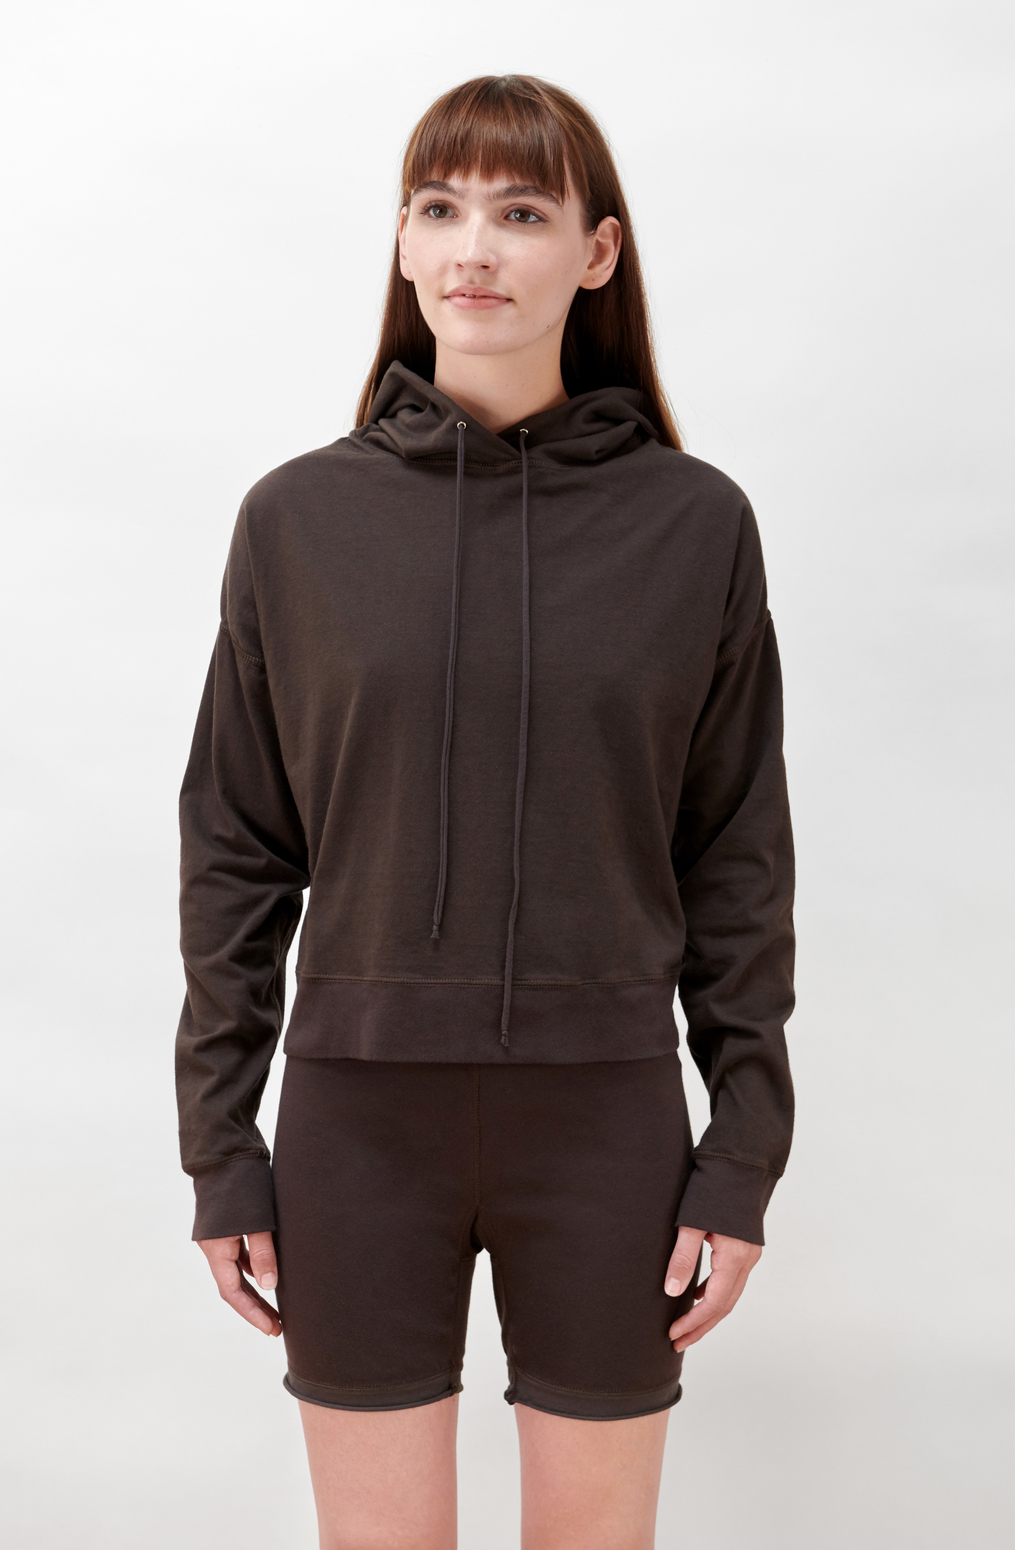 The hoodie   basic   espresso   ac 123   september 2019   robert rausch4364 copy